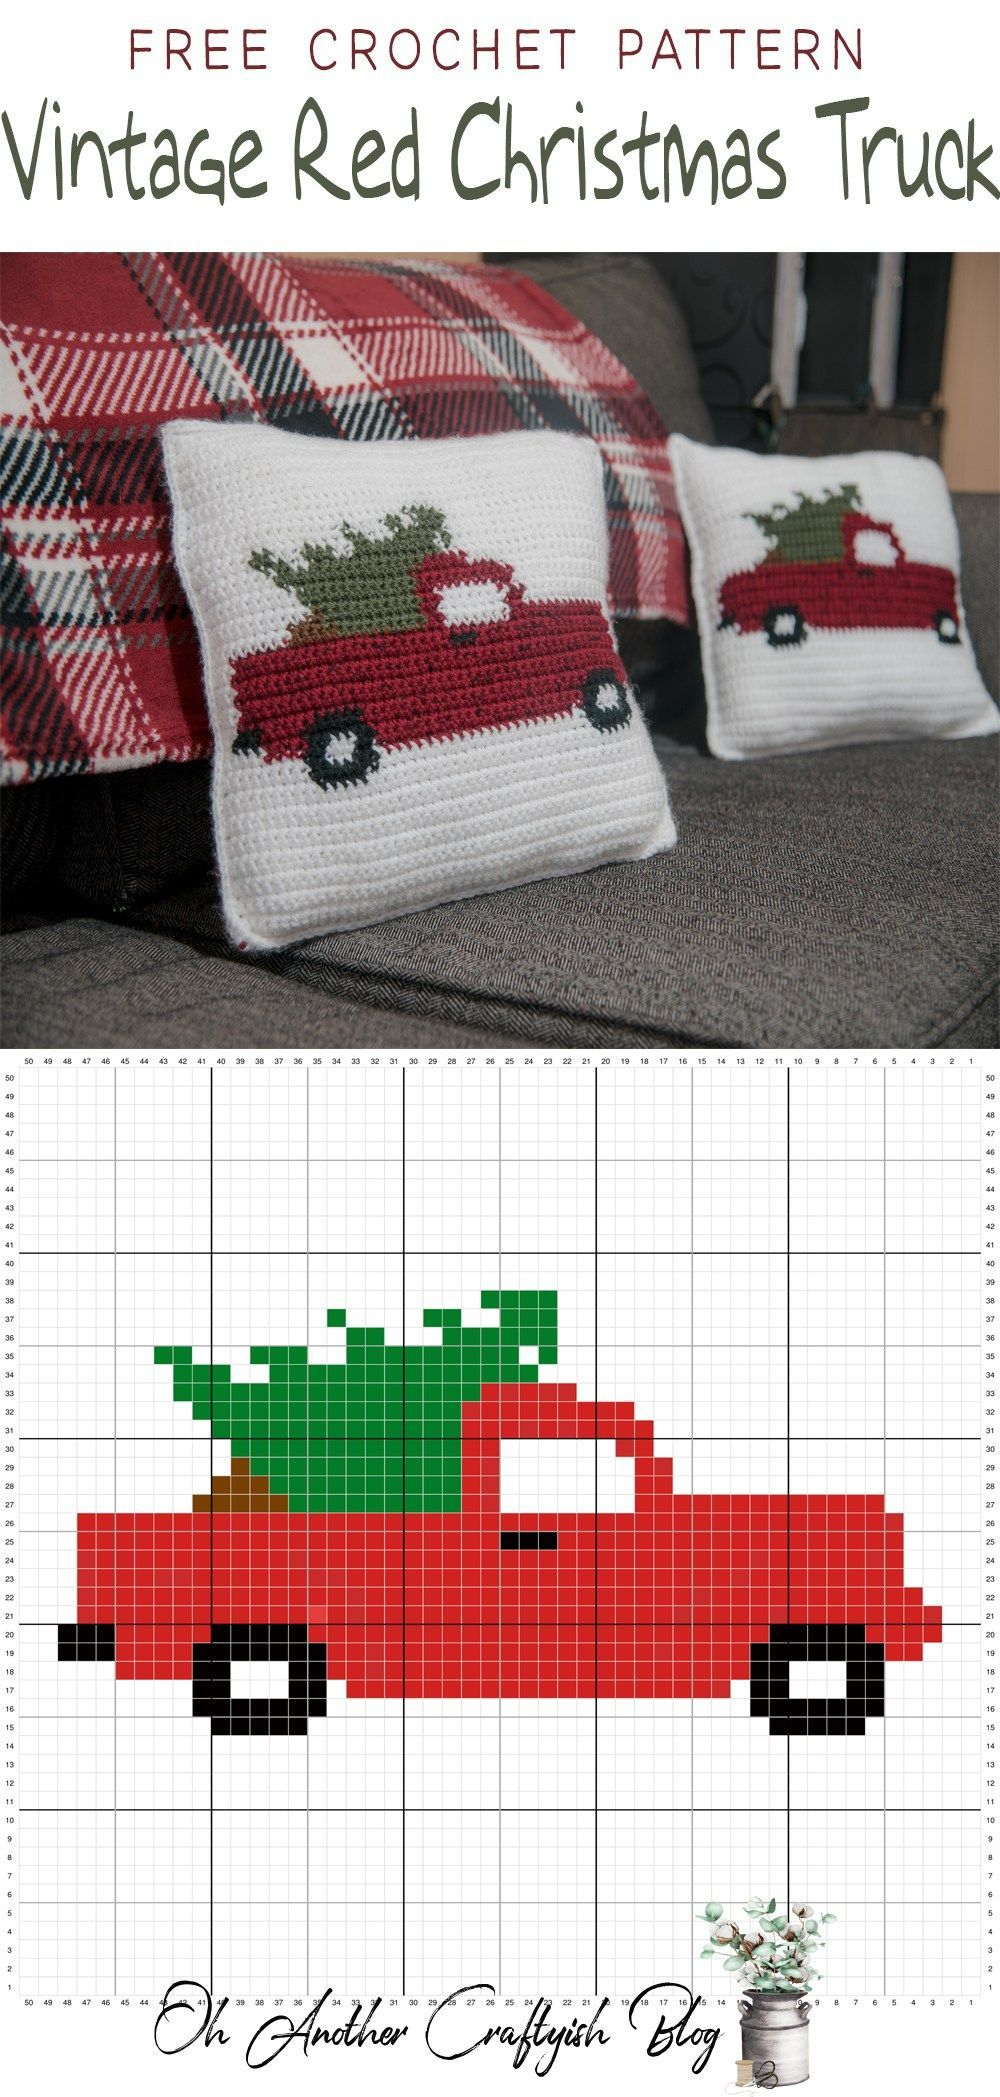 Free Crochet Pattern For The Vintage Red Christmas Truck By Tashiab Basic Granny Square Stitch Diagram